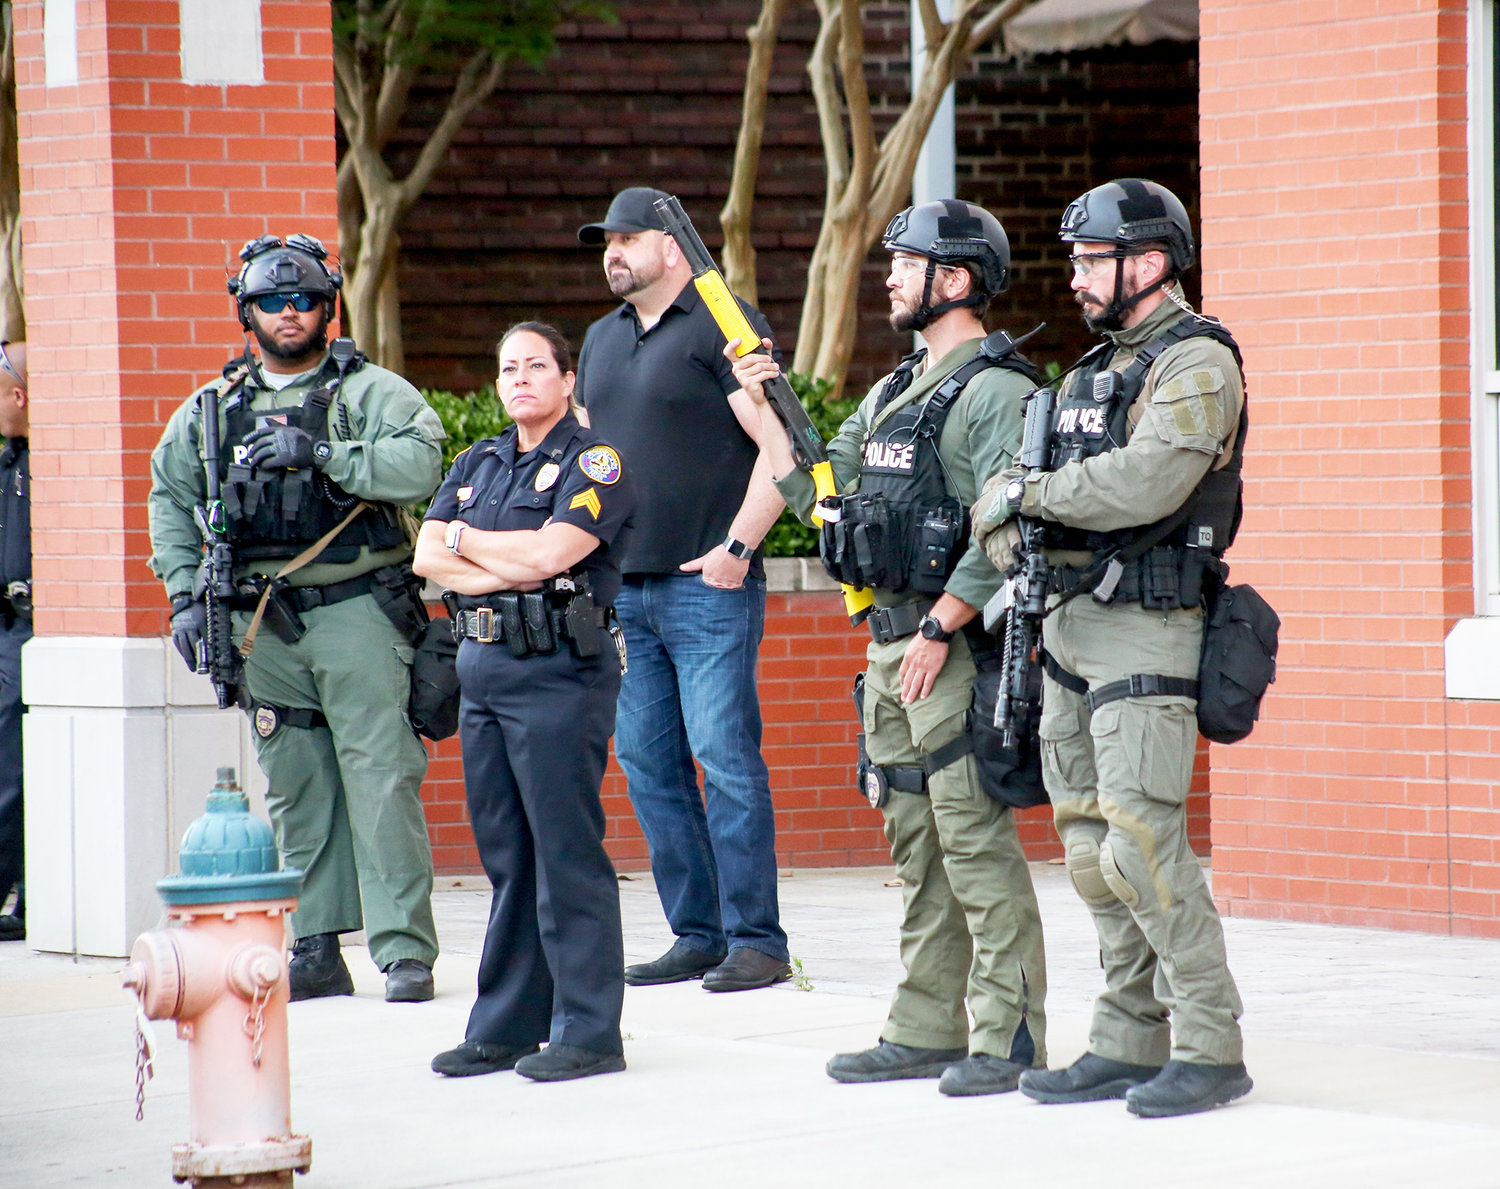 PUBLIC INFORMATION OFFICER Evie West, center, and fellow officers in tactical gear stand in front of the Cleveland Police Department during Sunday's protest.